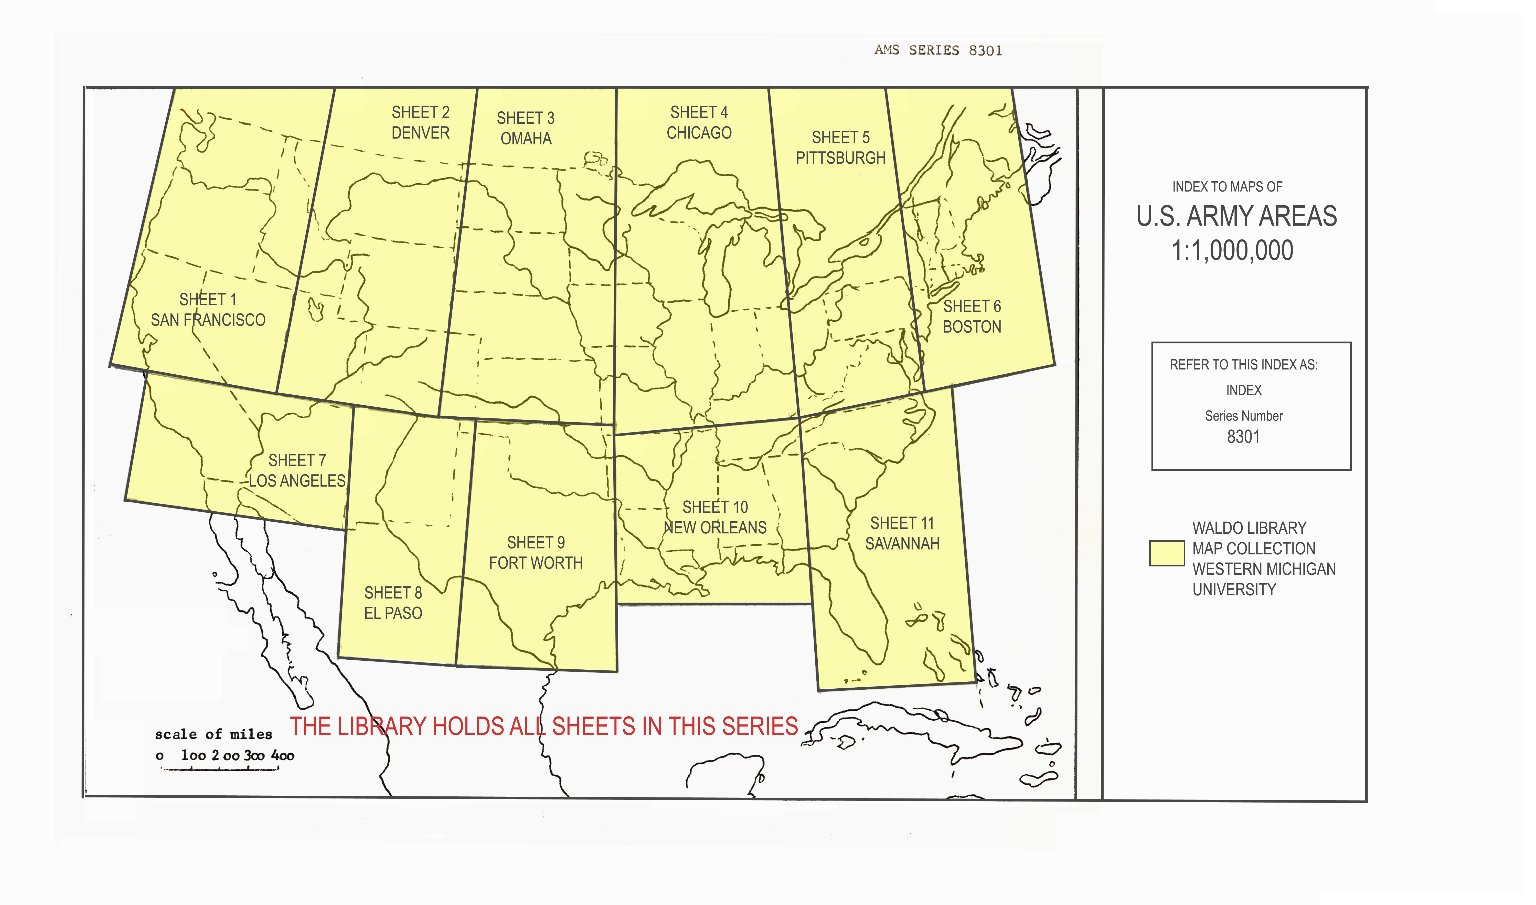 Index to maps of U.S. Army areas 1:1,000,000